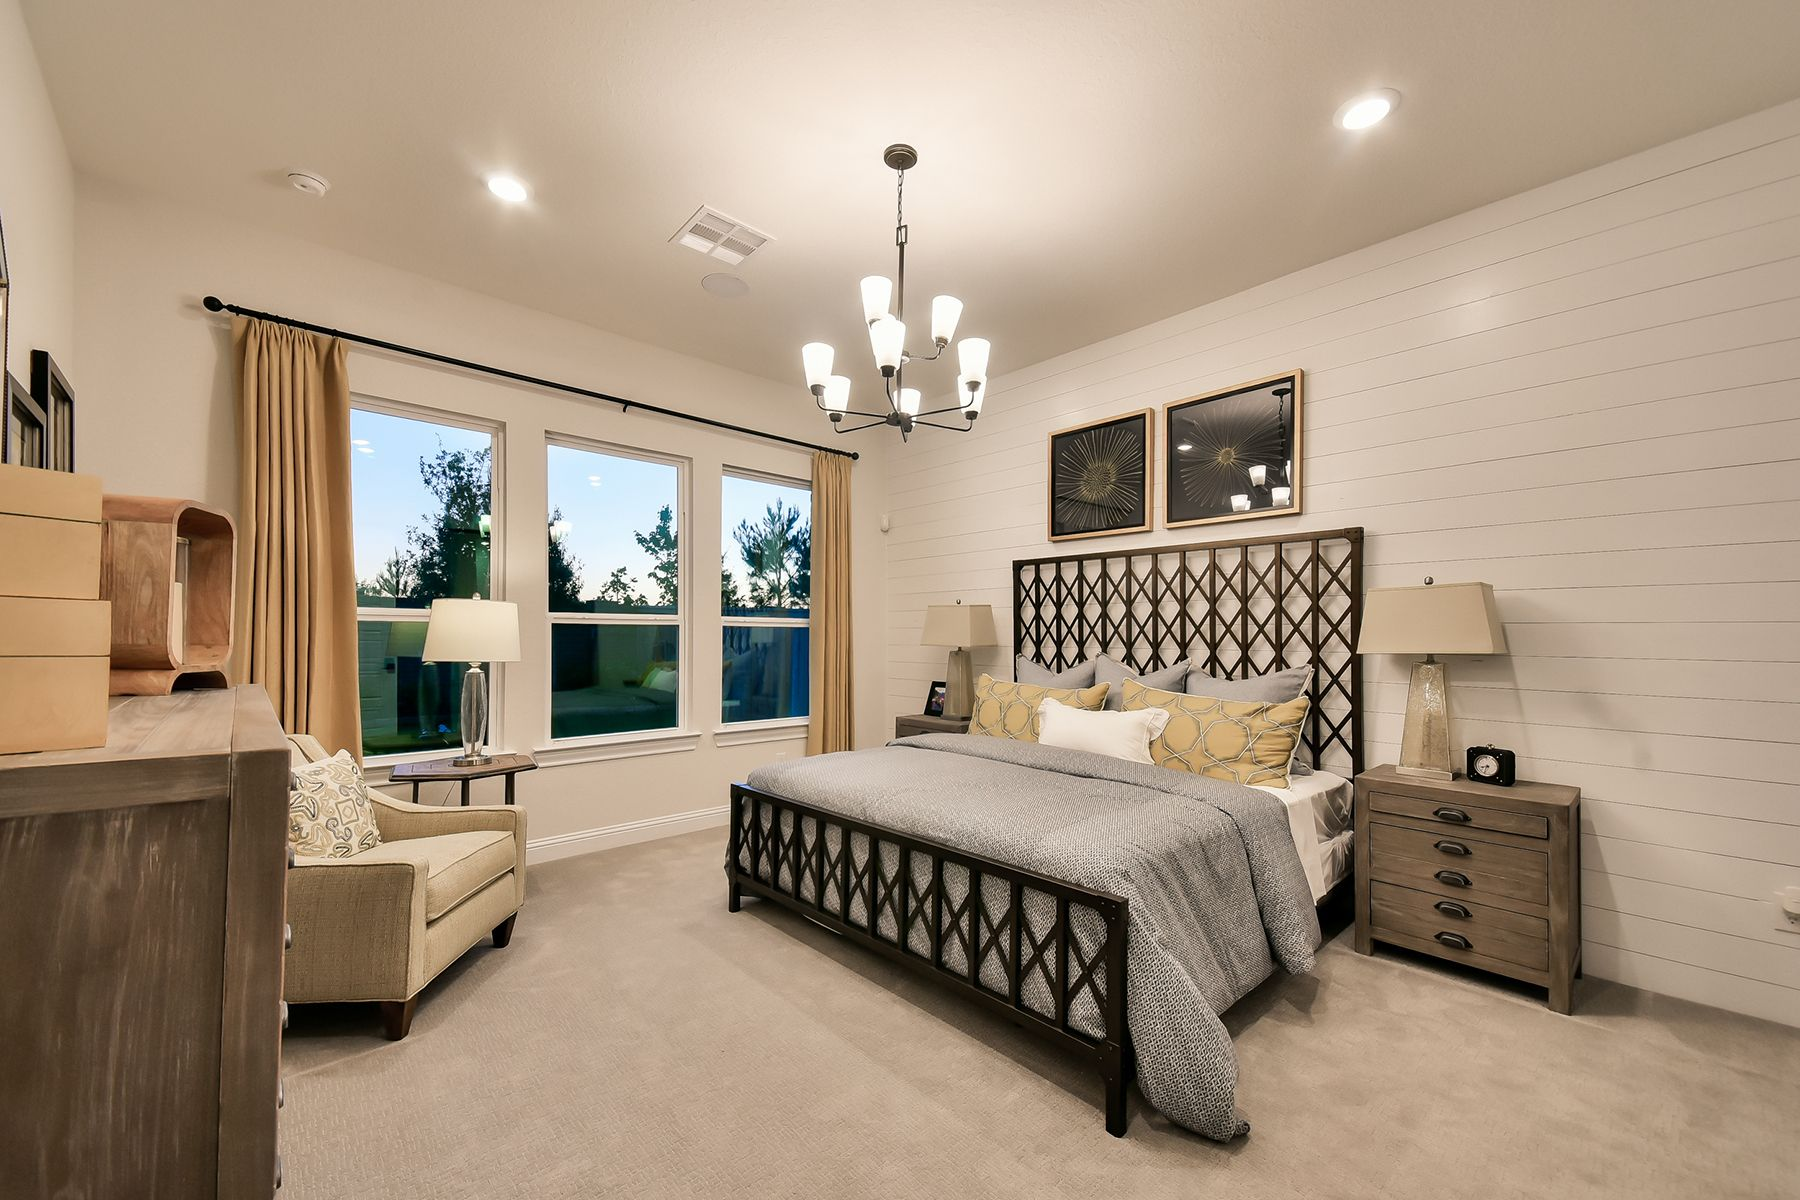 Bedroom featured in the Roseville By M/I Homes in Houston, TX